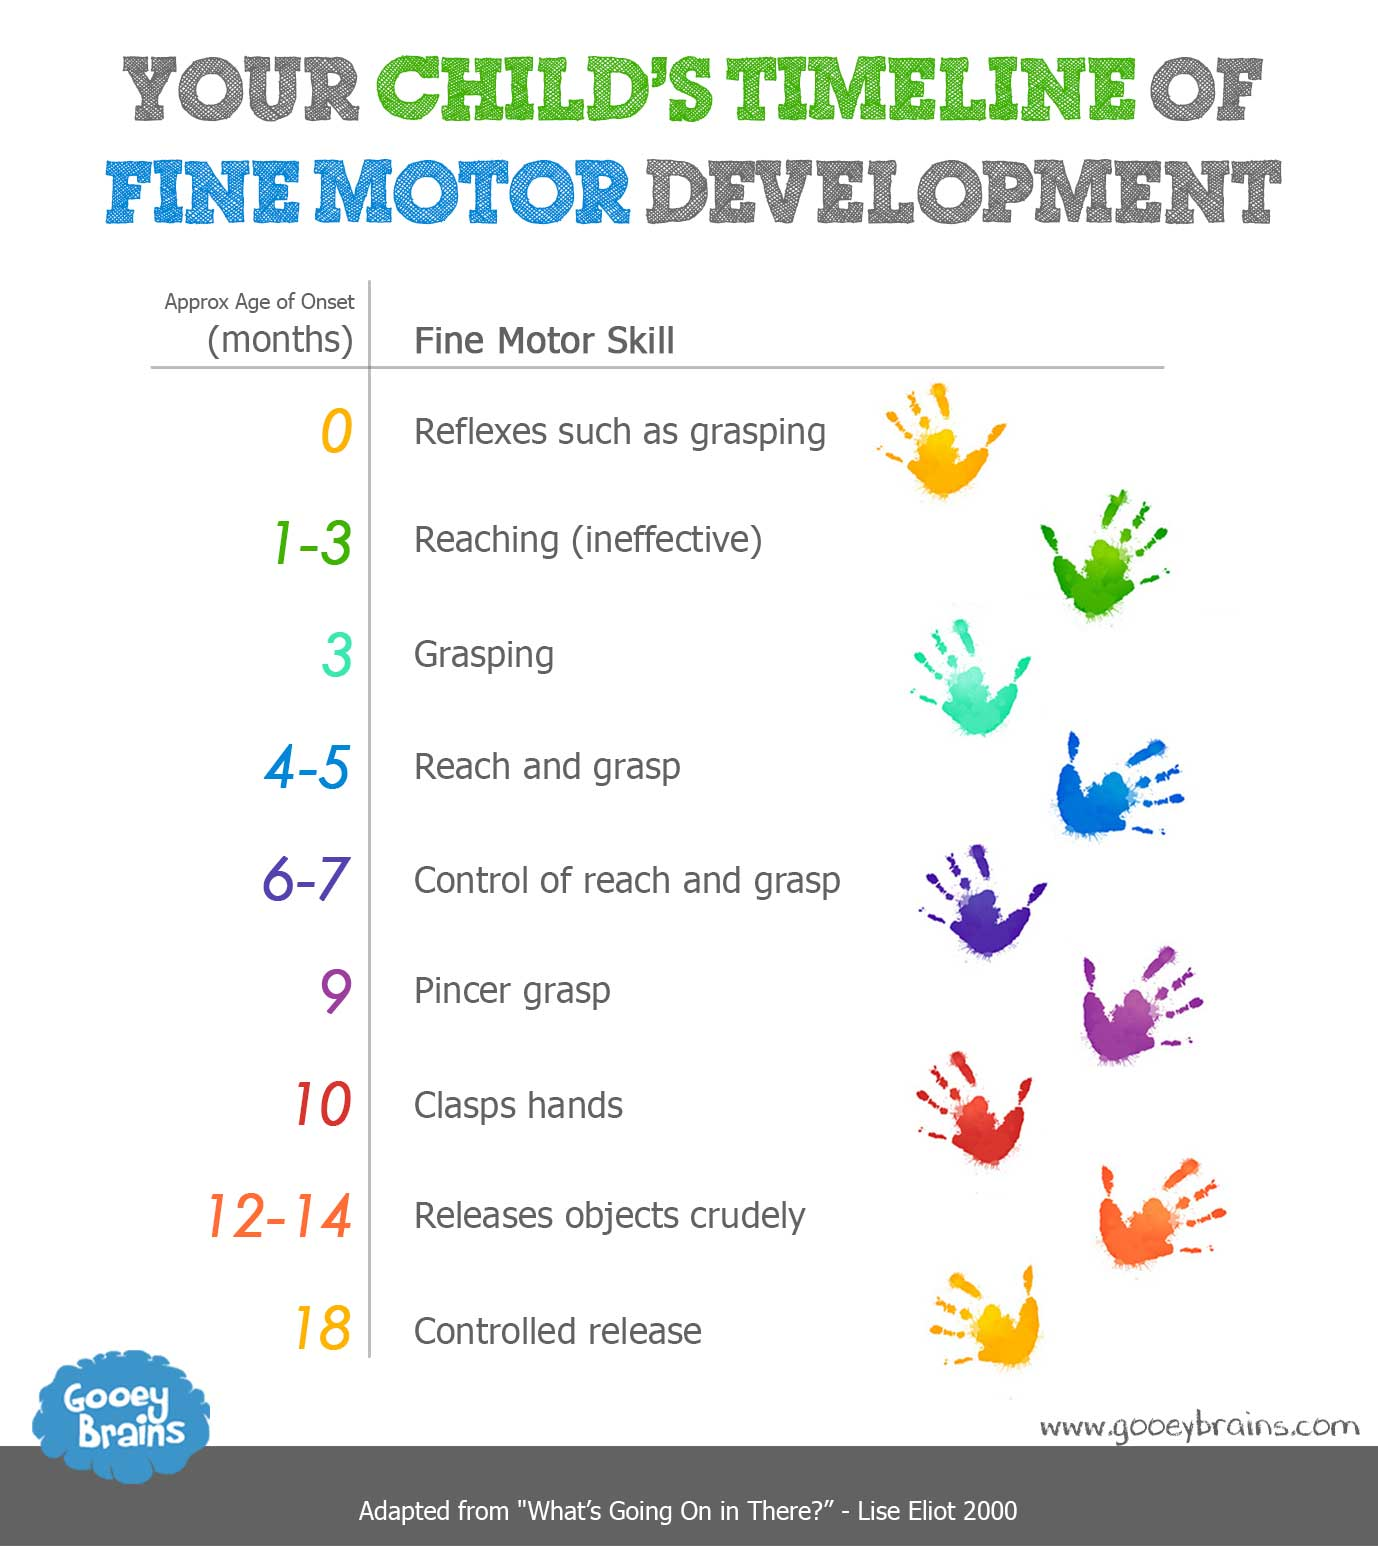 motor development Motor development is a very important part of growing up motor activities help children learn how to use their bodies, gain confidence as they master skills, and prepare them for school.